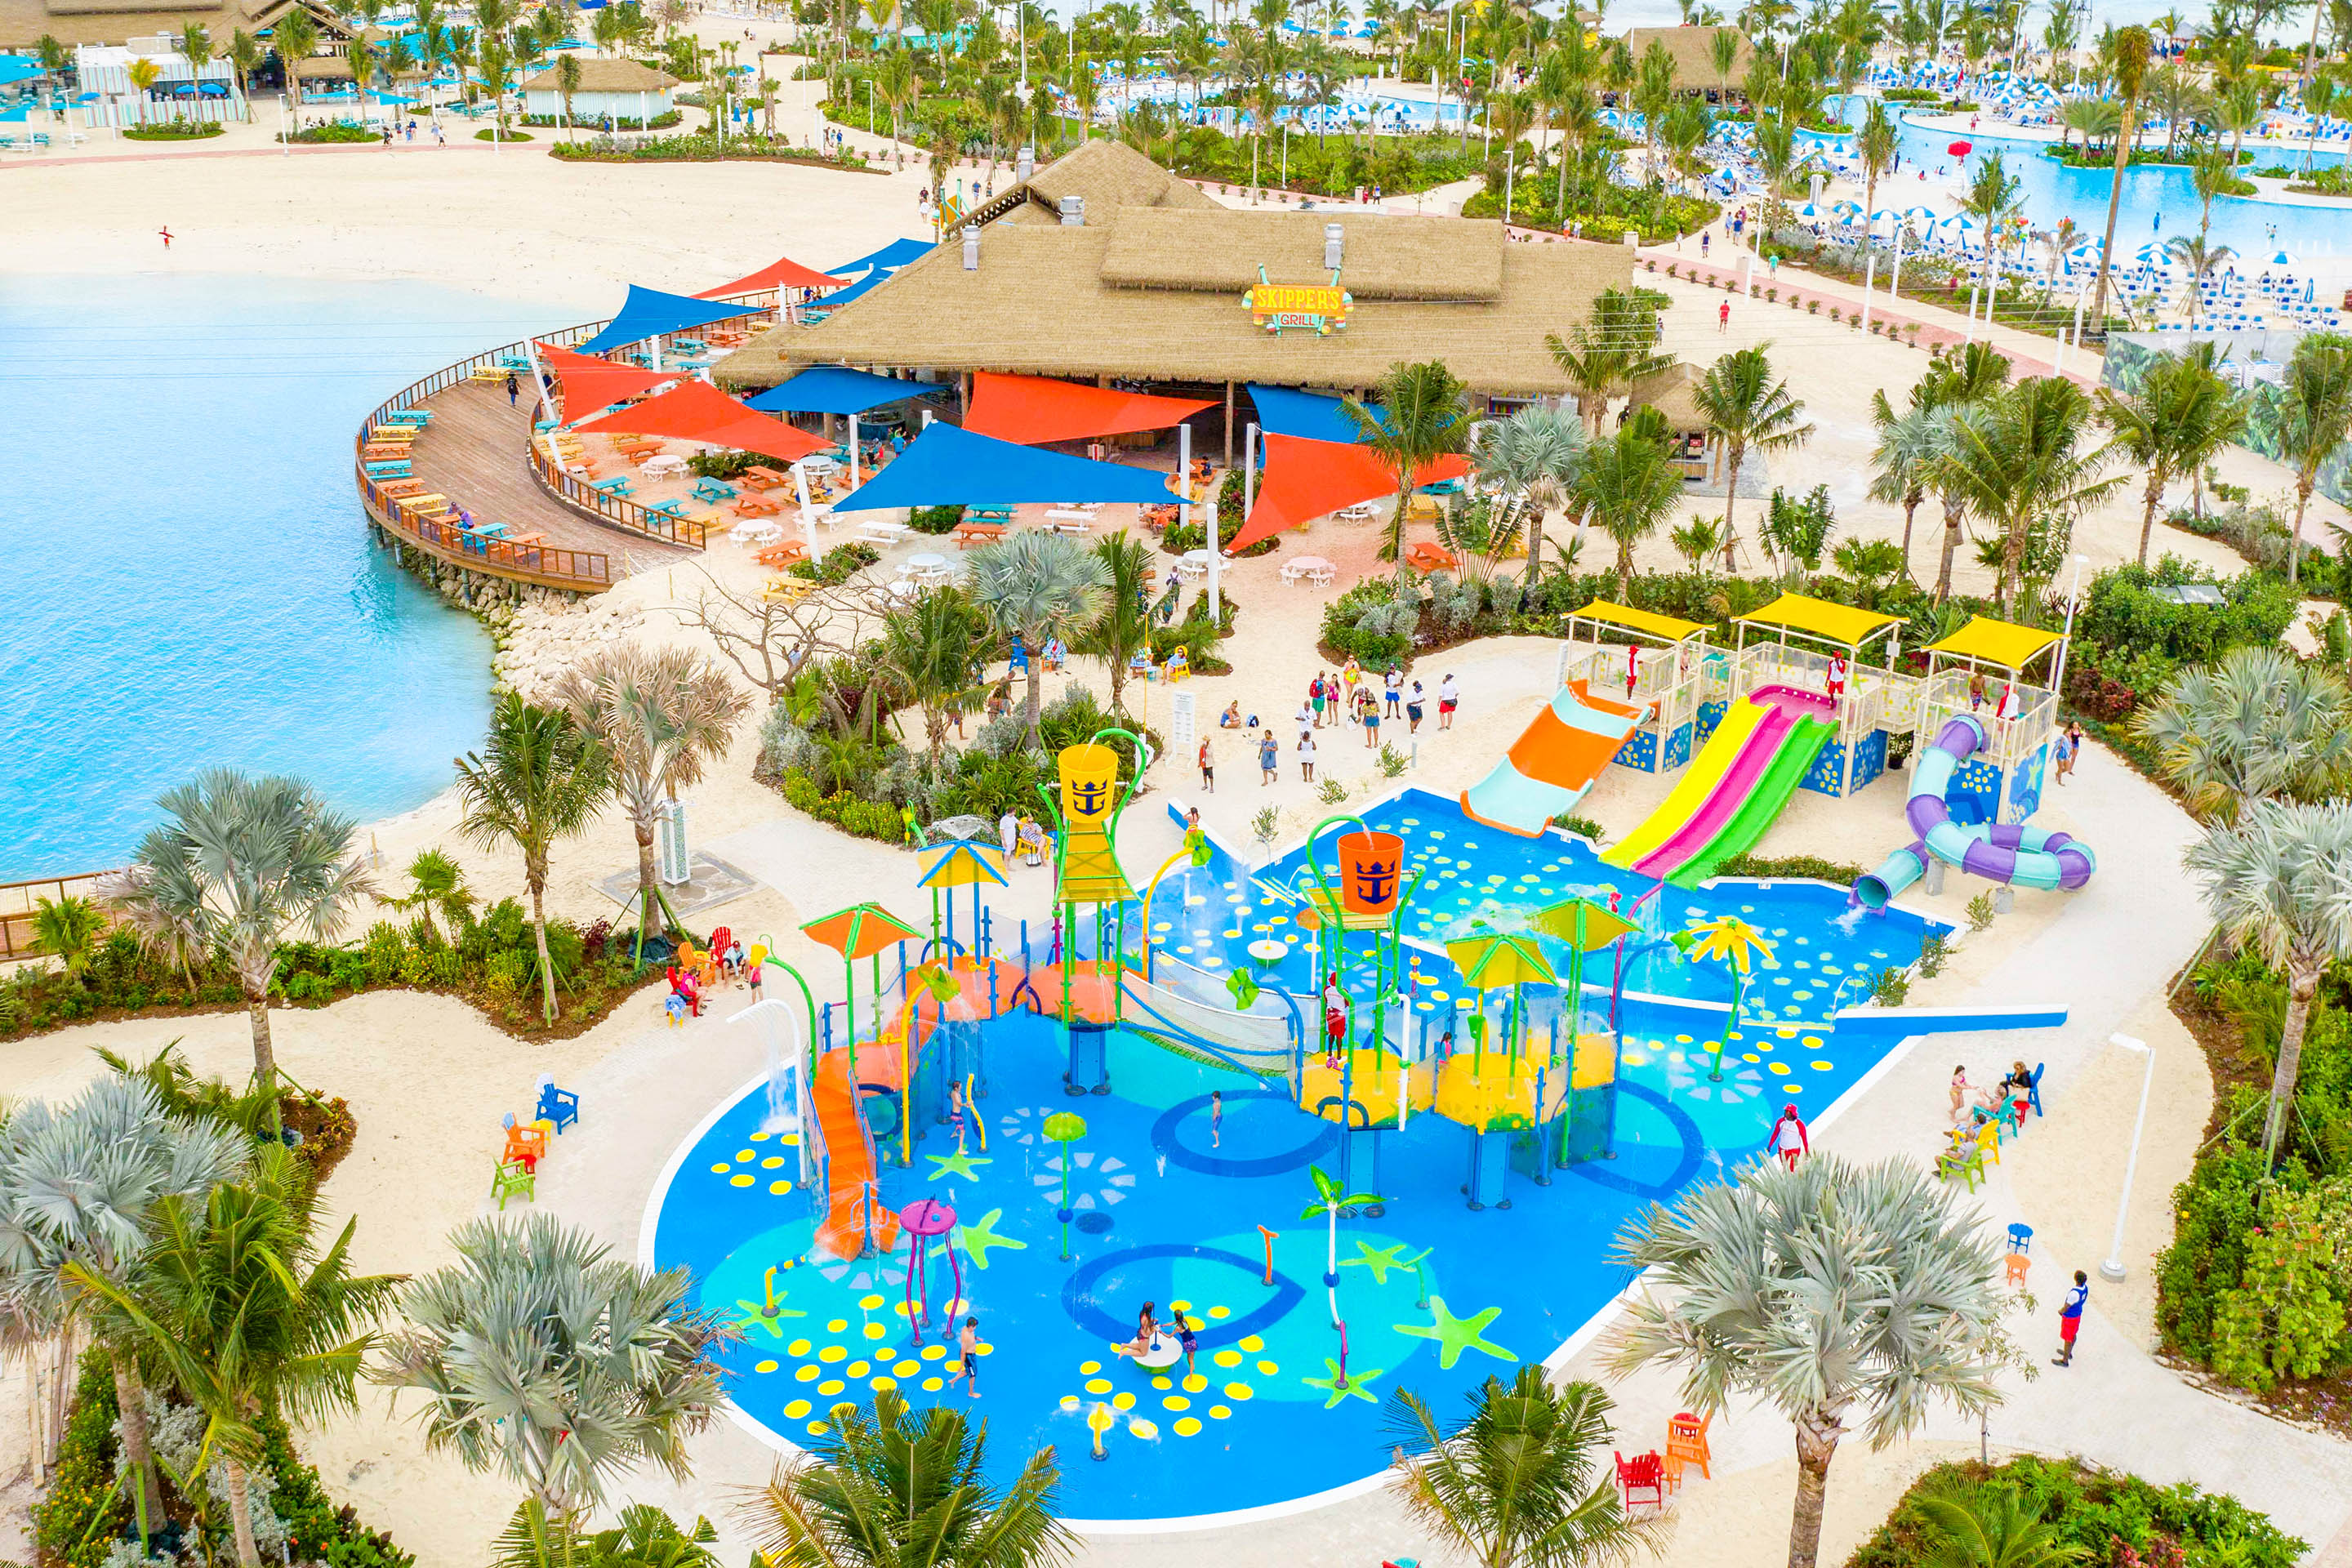 Perfect Day at Cococay Splashaway Bay waterpark